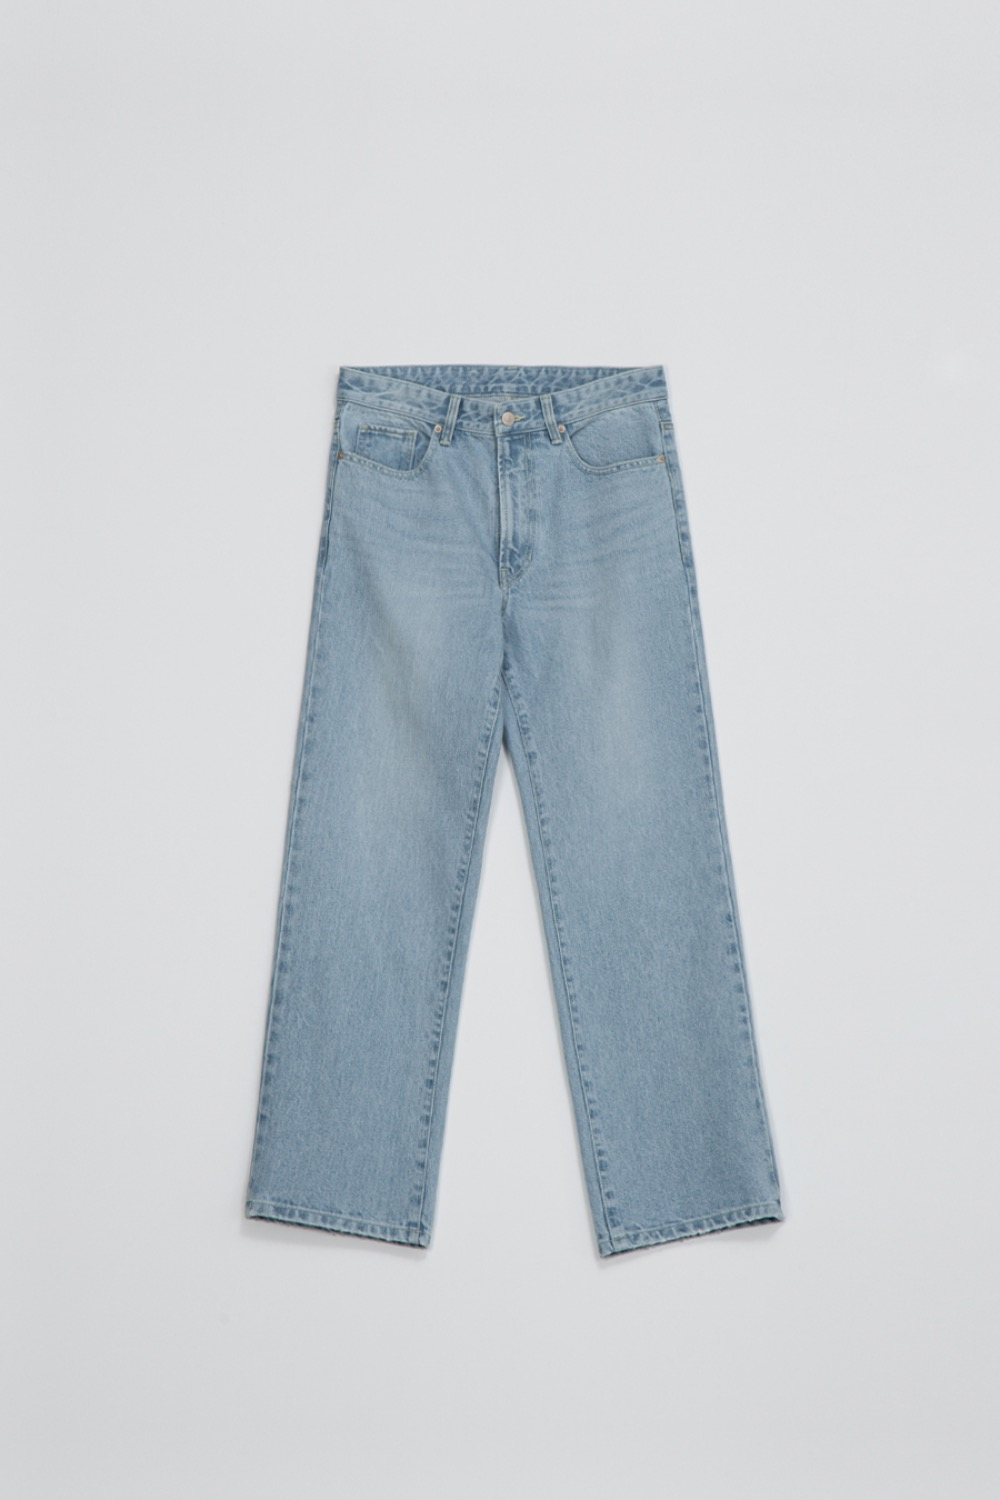 MATIN LOWRISE BOYFREINDS FIT JEAN - ICED BLUE